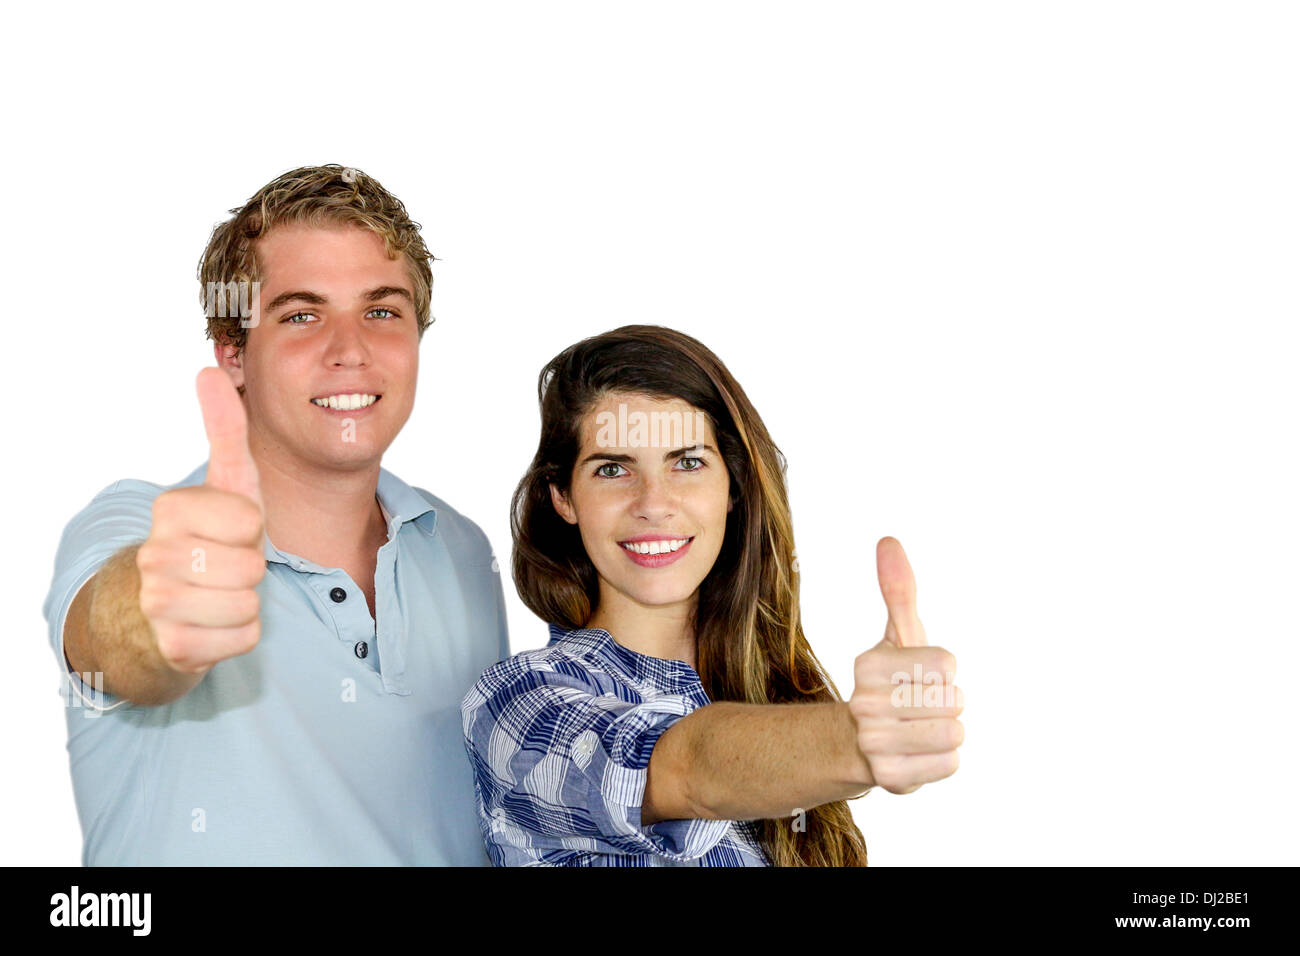 A young man and woman showing victory and positiveness with their fingers - Stock Image